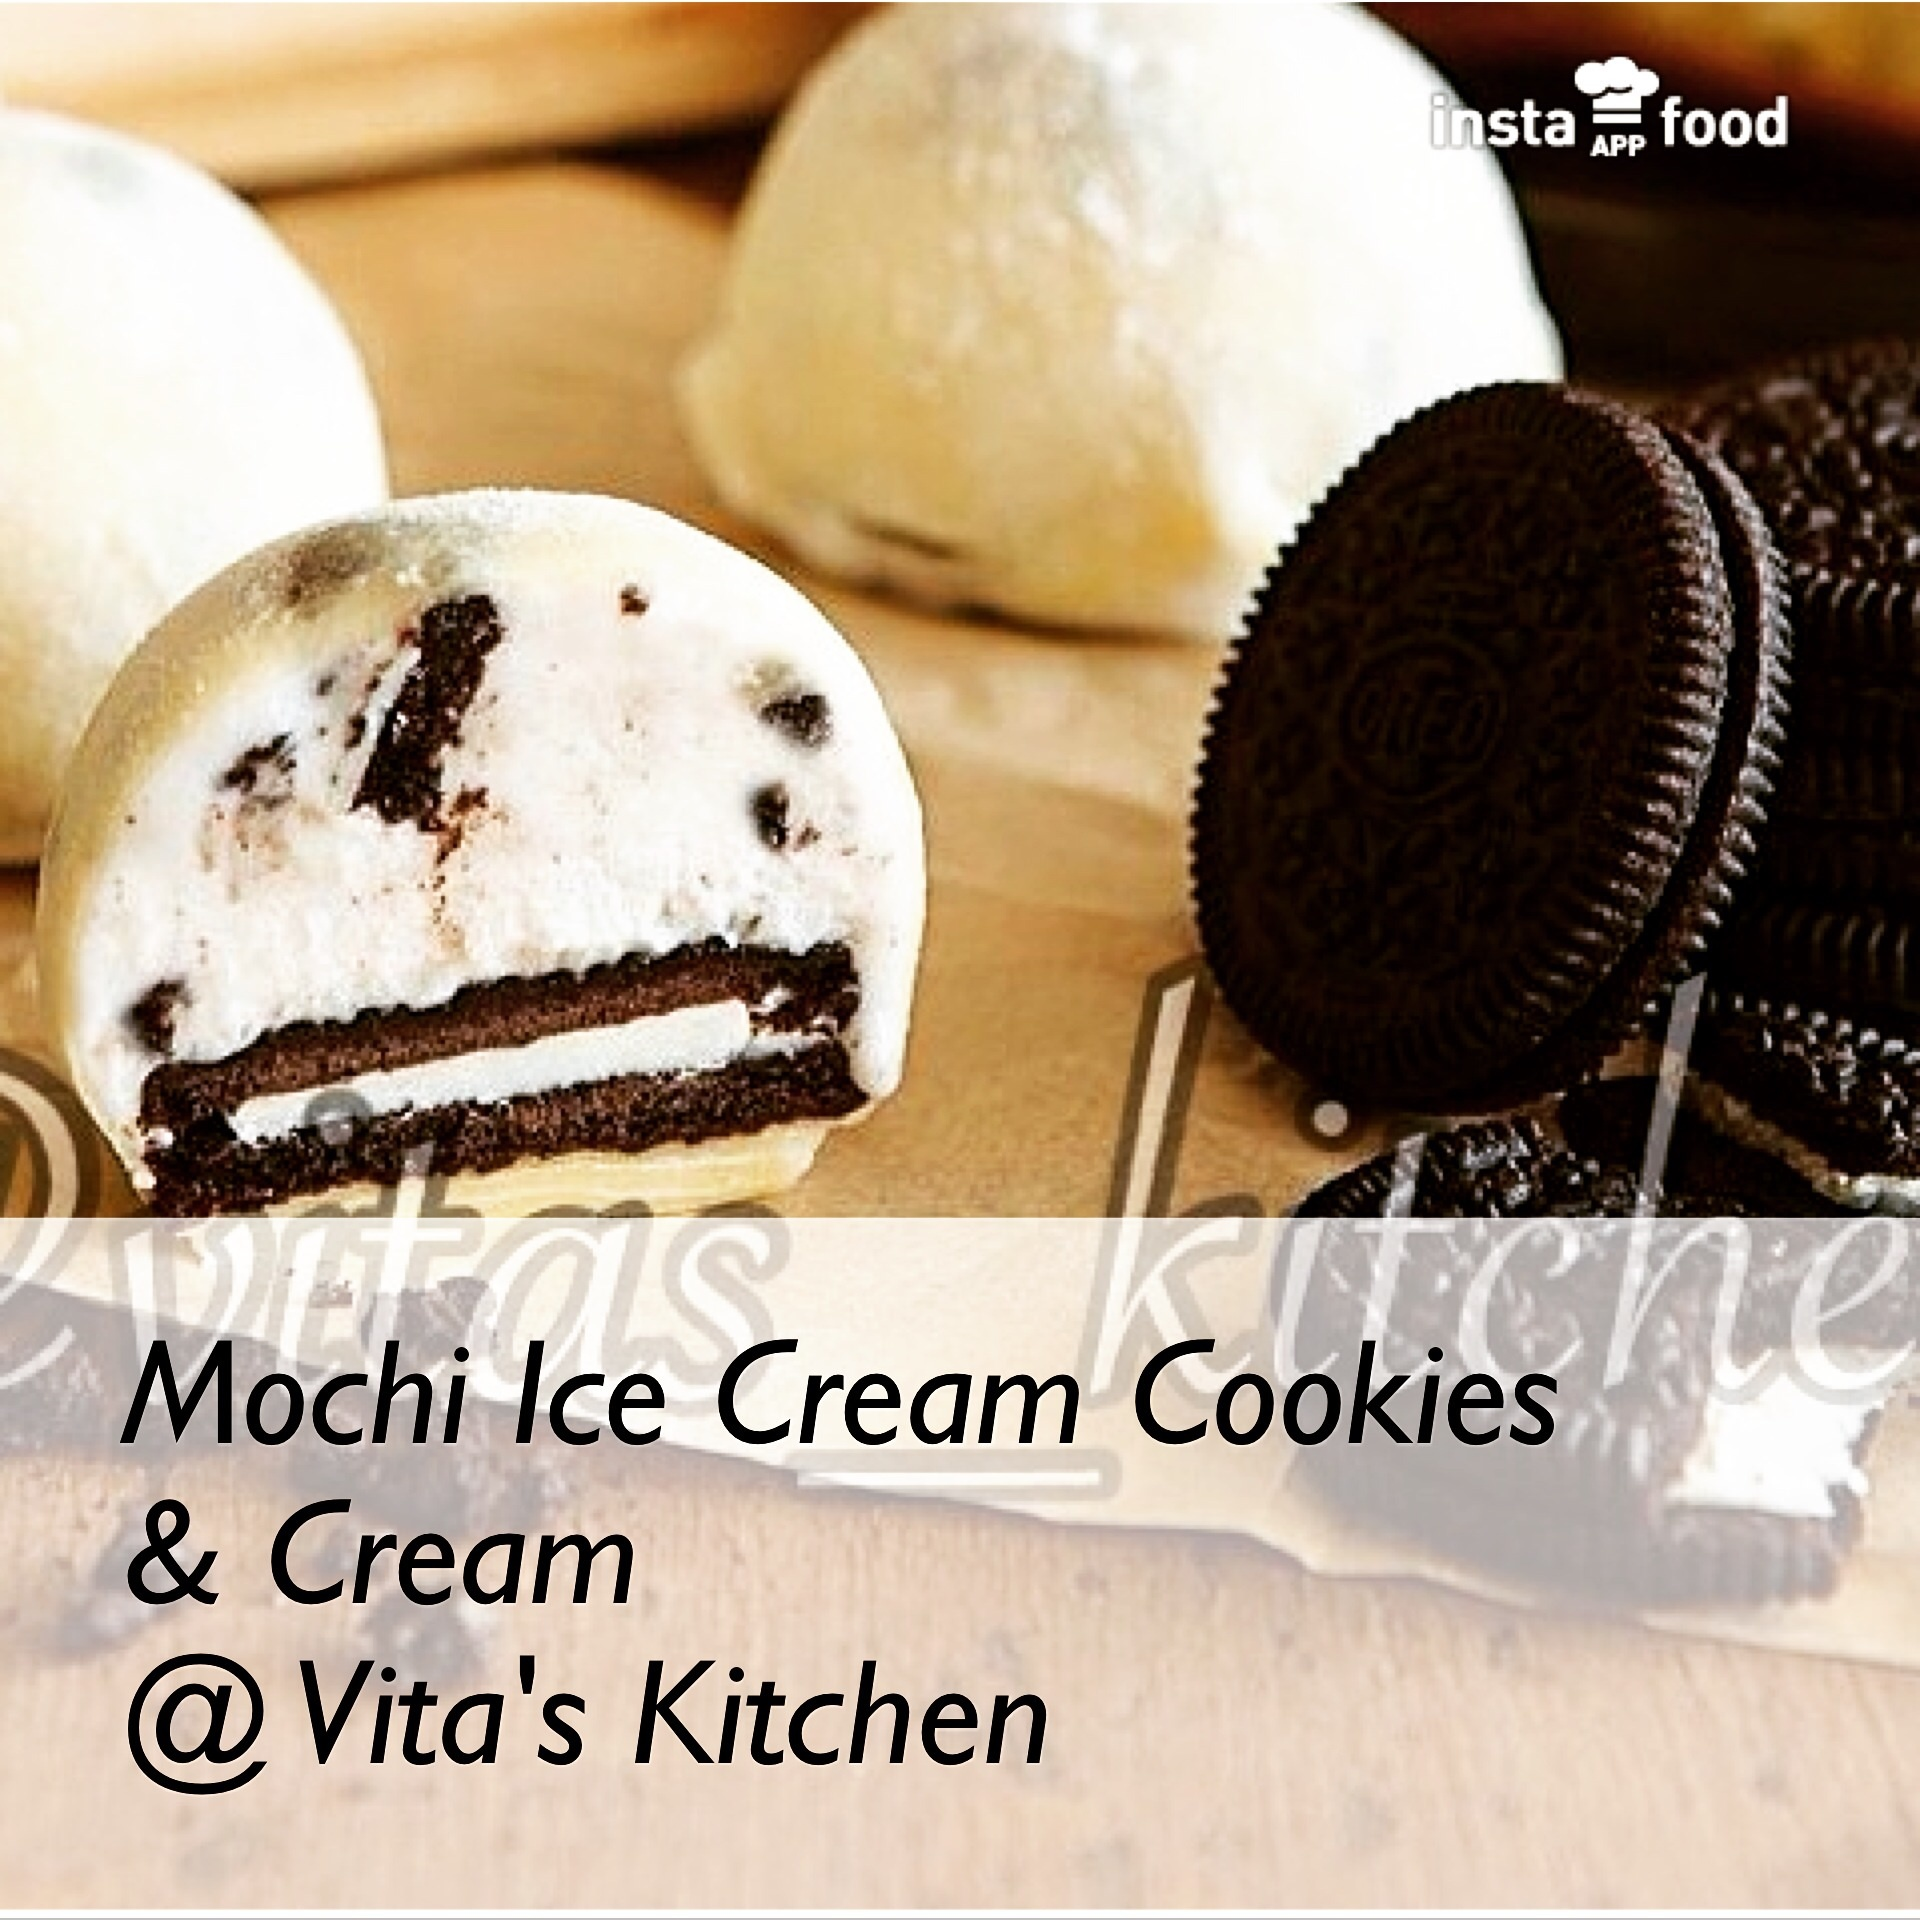 Jual MOCHI ICE CREAM OREO - Vita s Kitchen  50352458d1